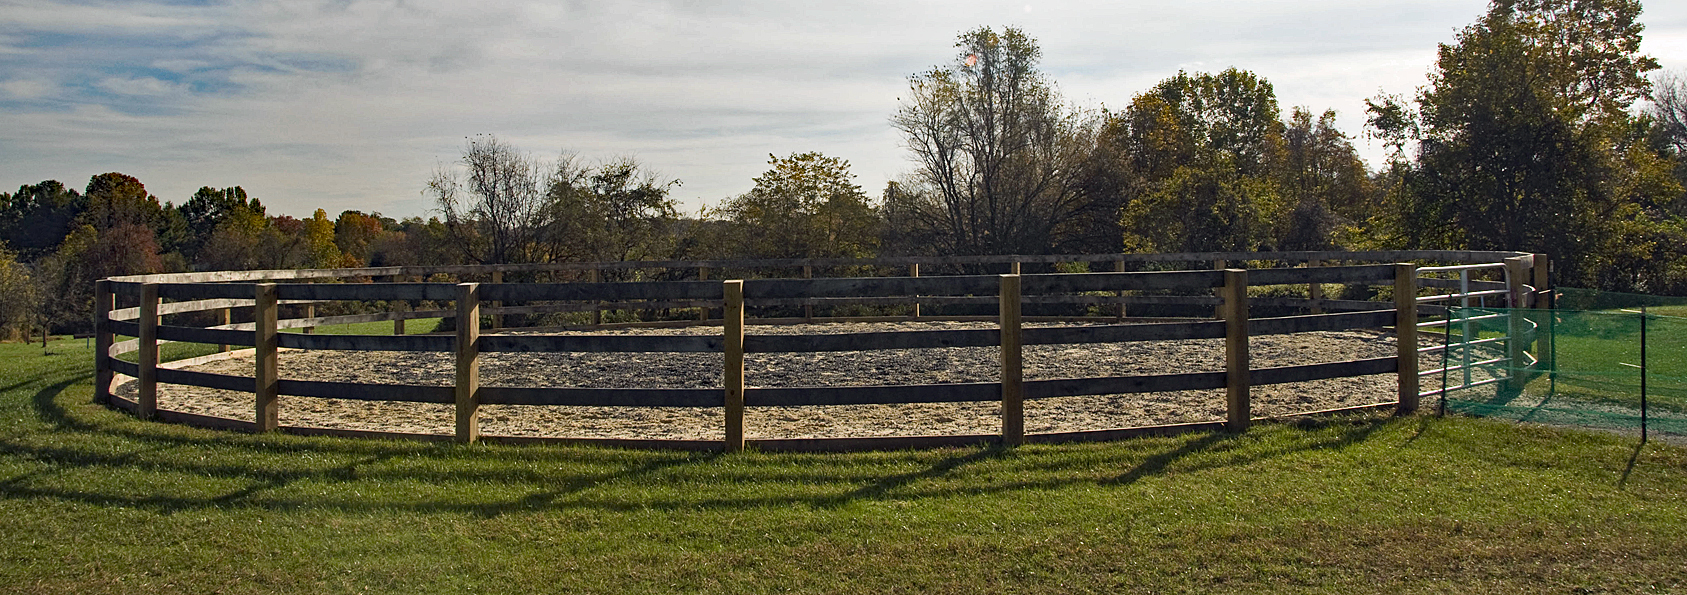 Small, circular warm-up riding ring